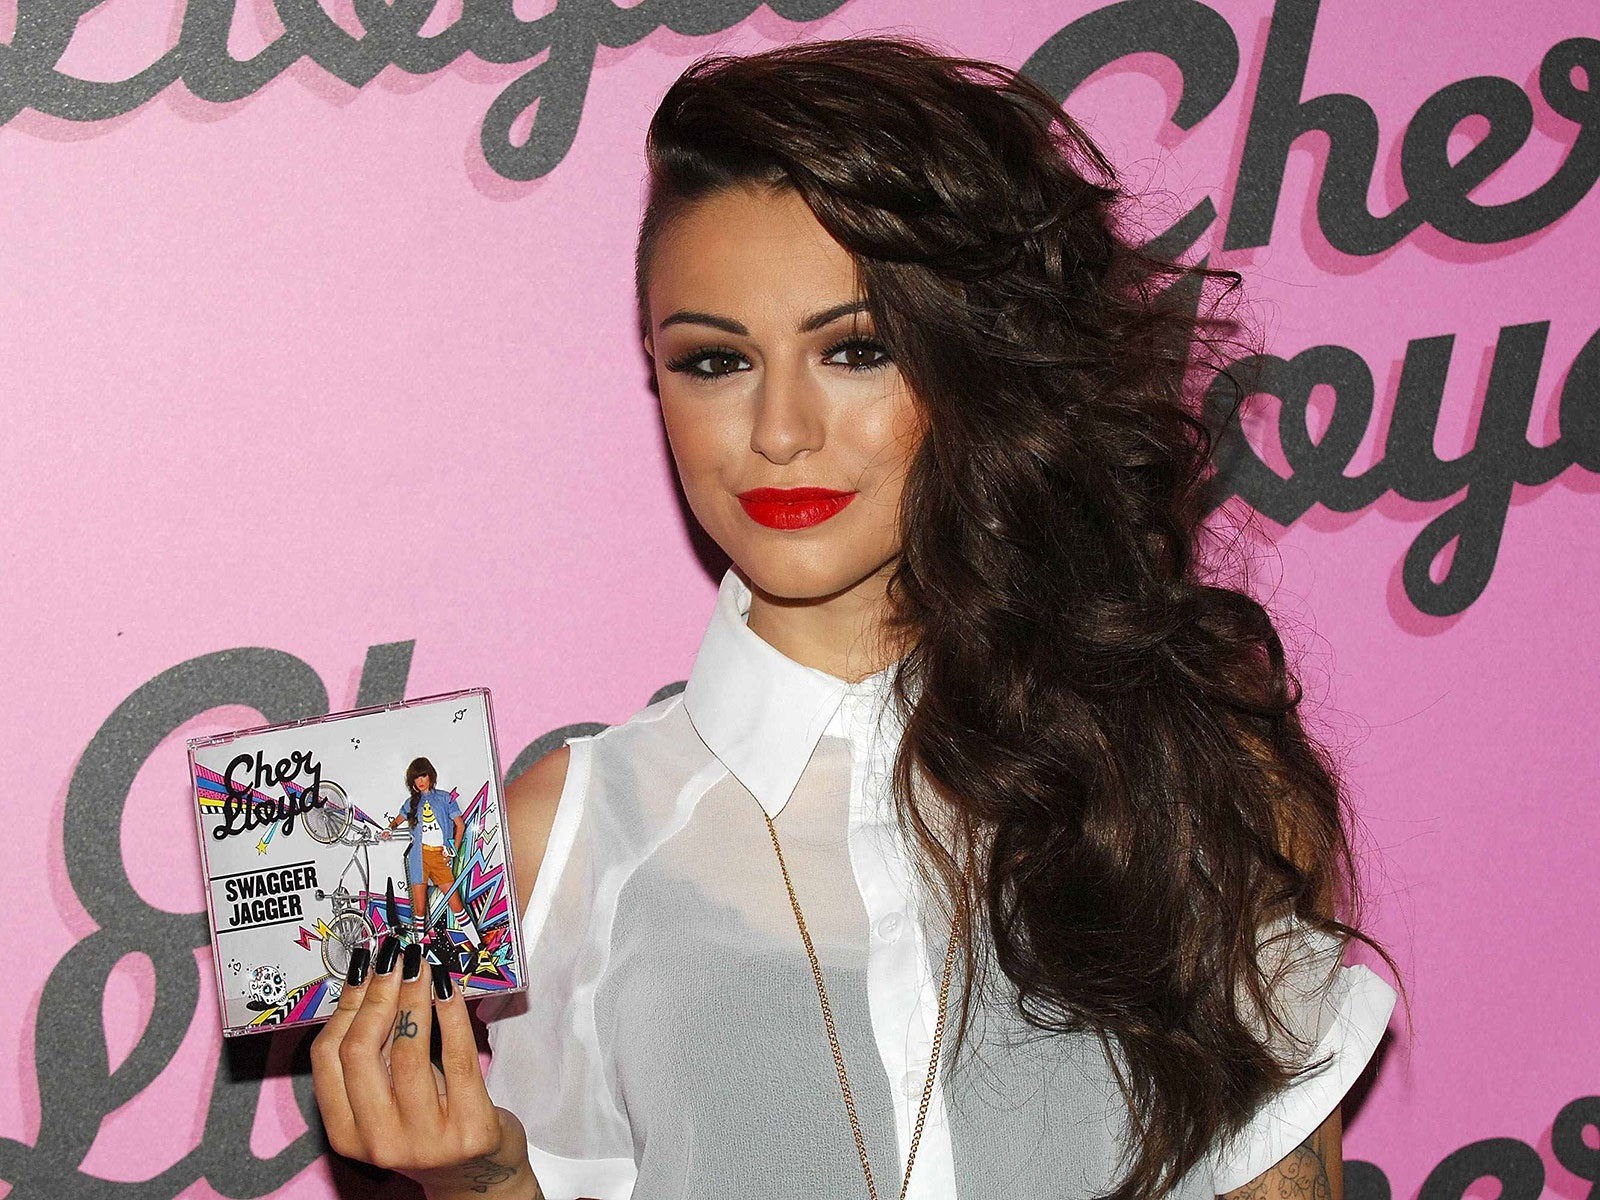 Cher lloyd rocks images Swagger jagger HD wallpaper and background photos 33198225